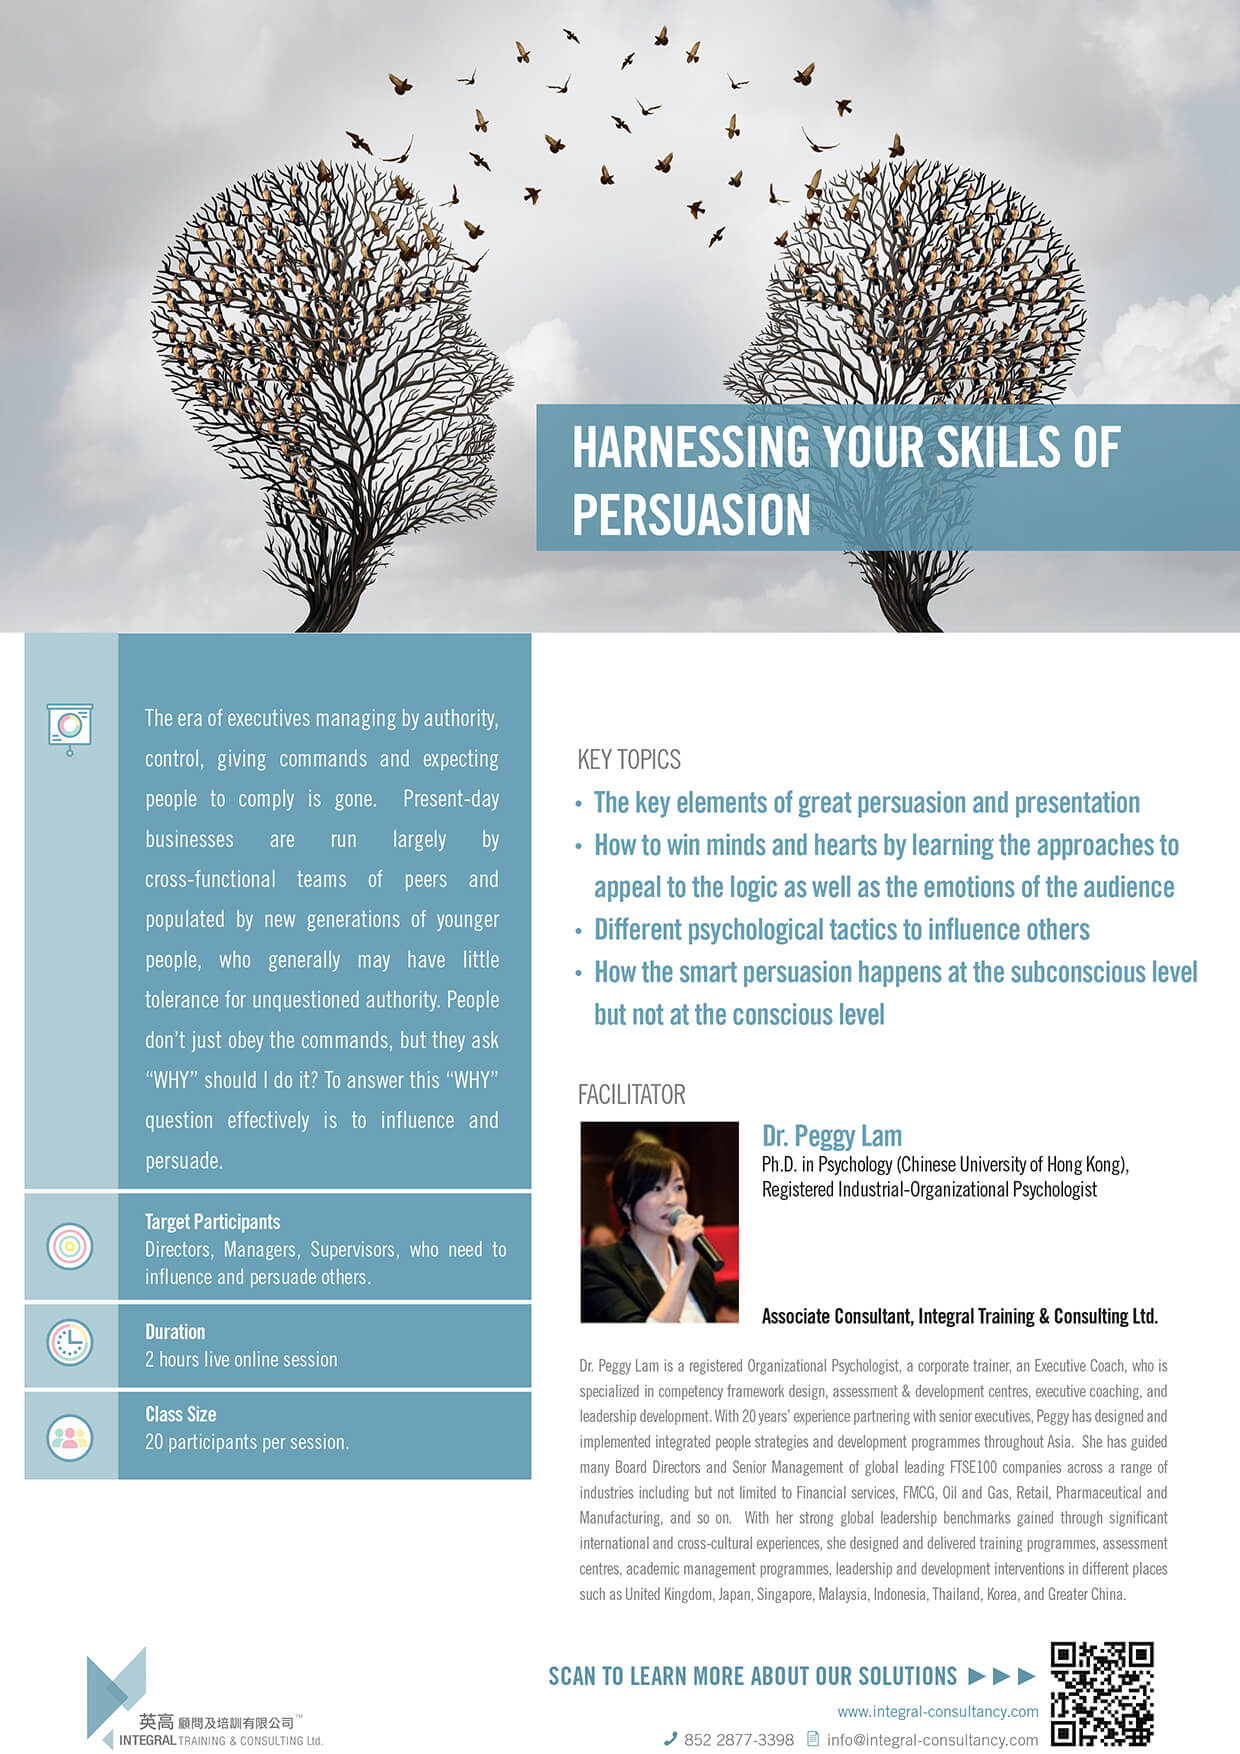 Harnessing Your Skills of Persuasion